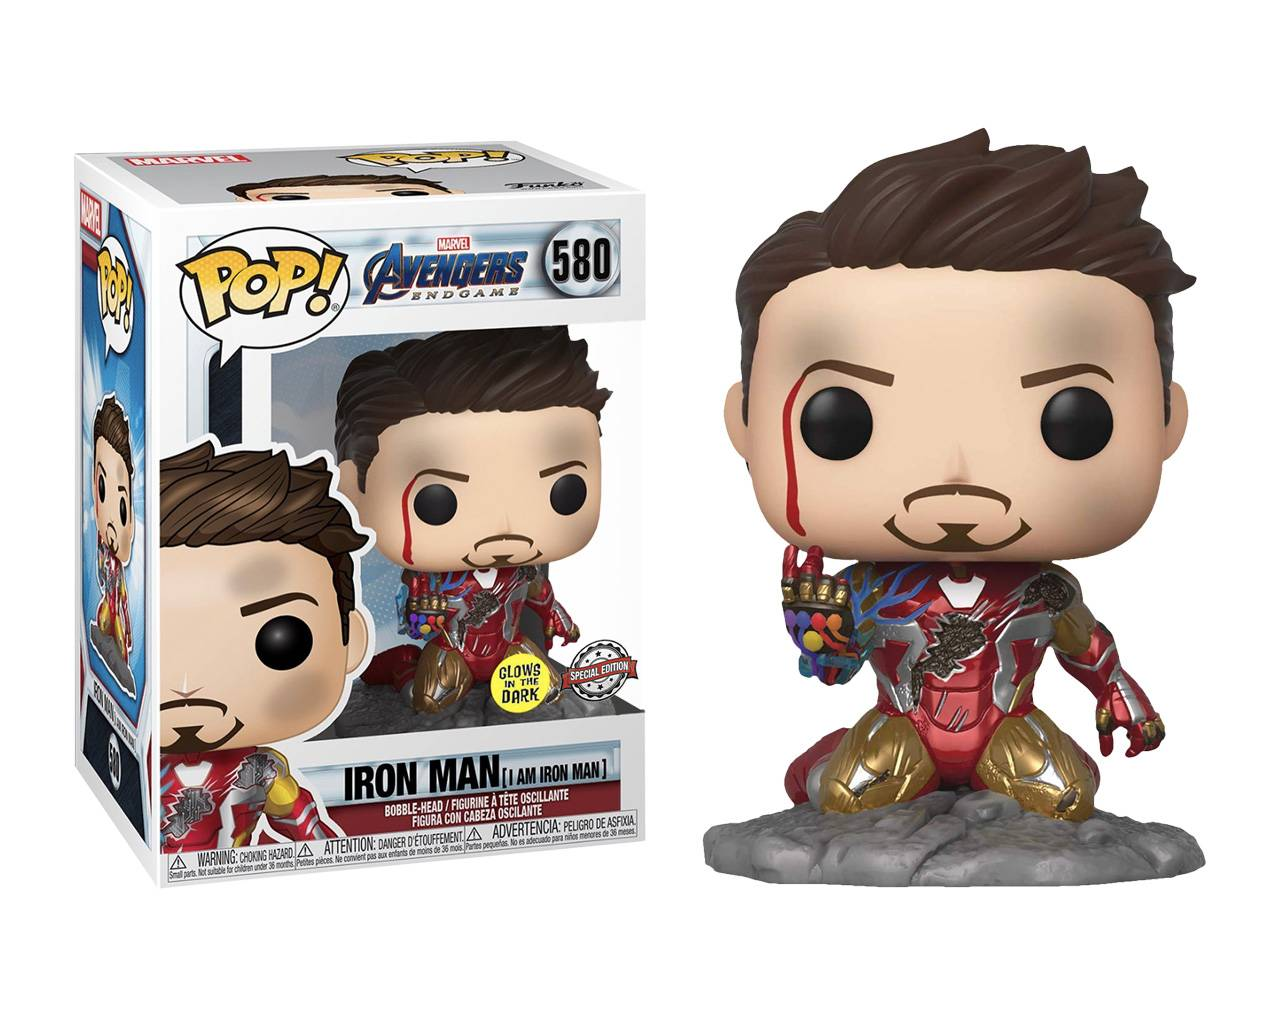 Iron Man (GITD) Pop! Vinyl